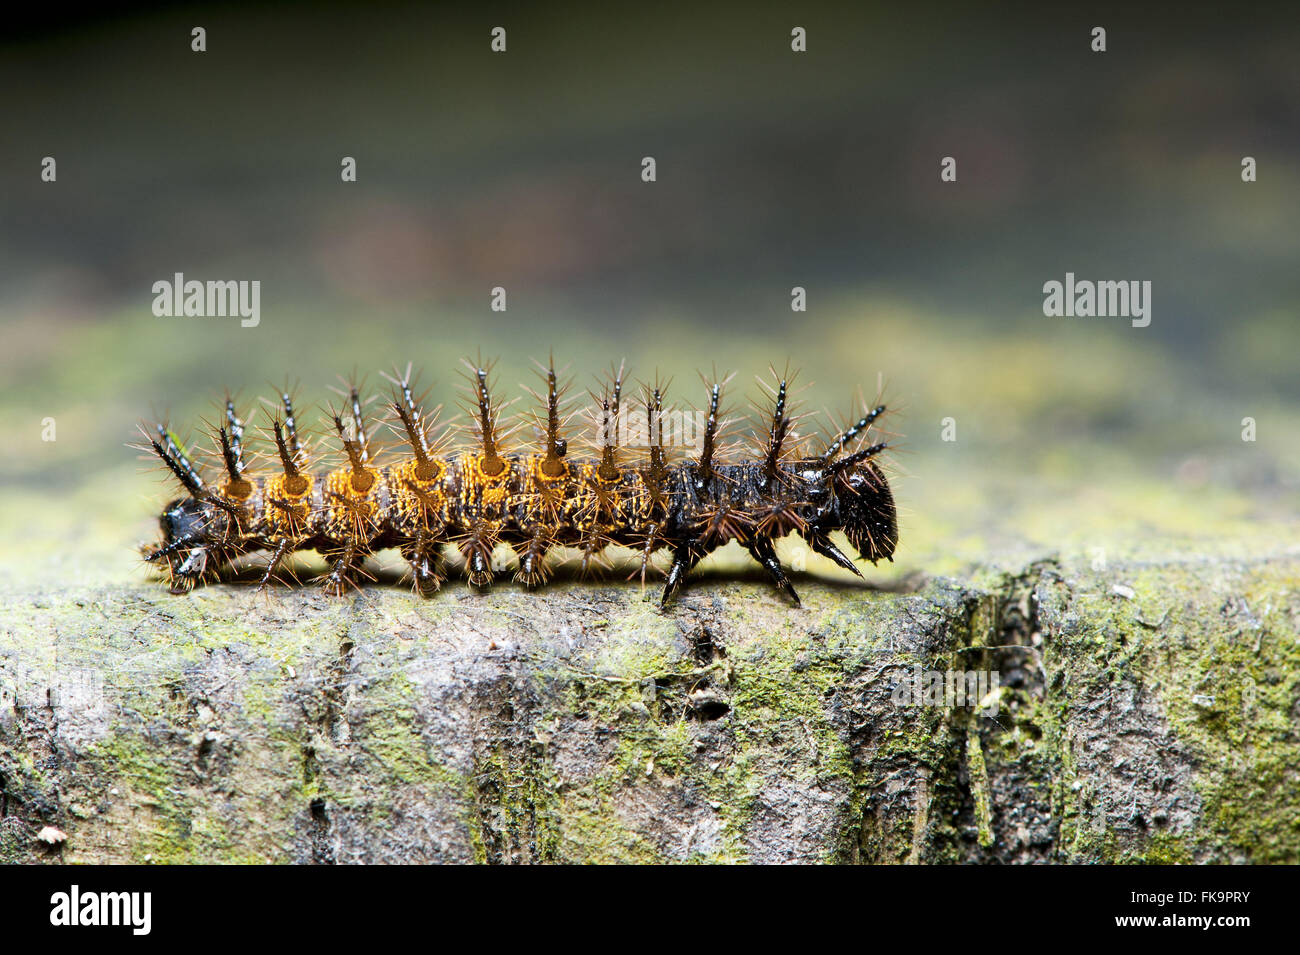 Stinging caterpillar on twig - Stock Image